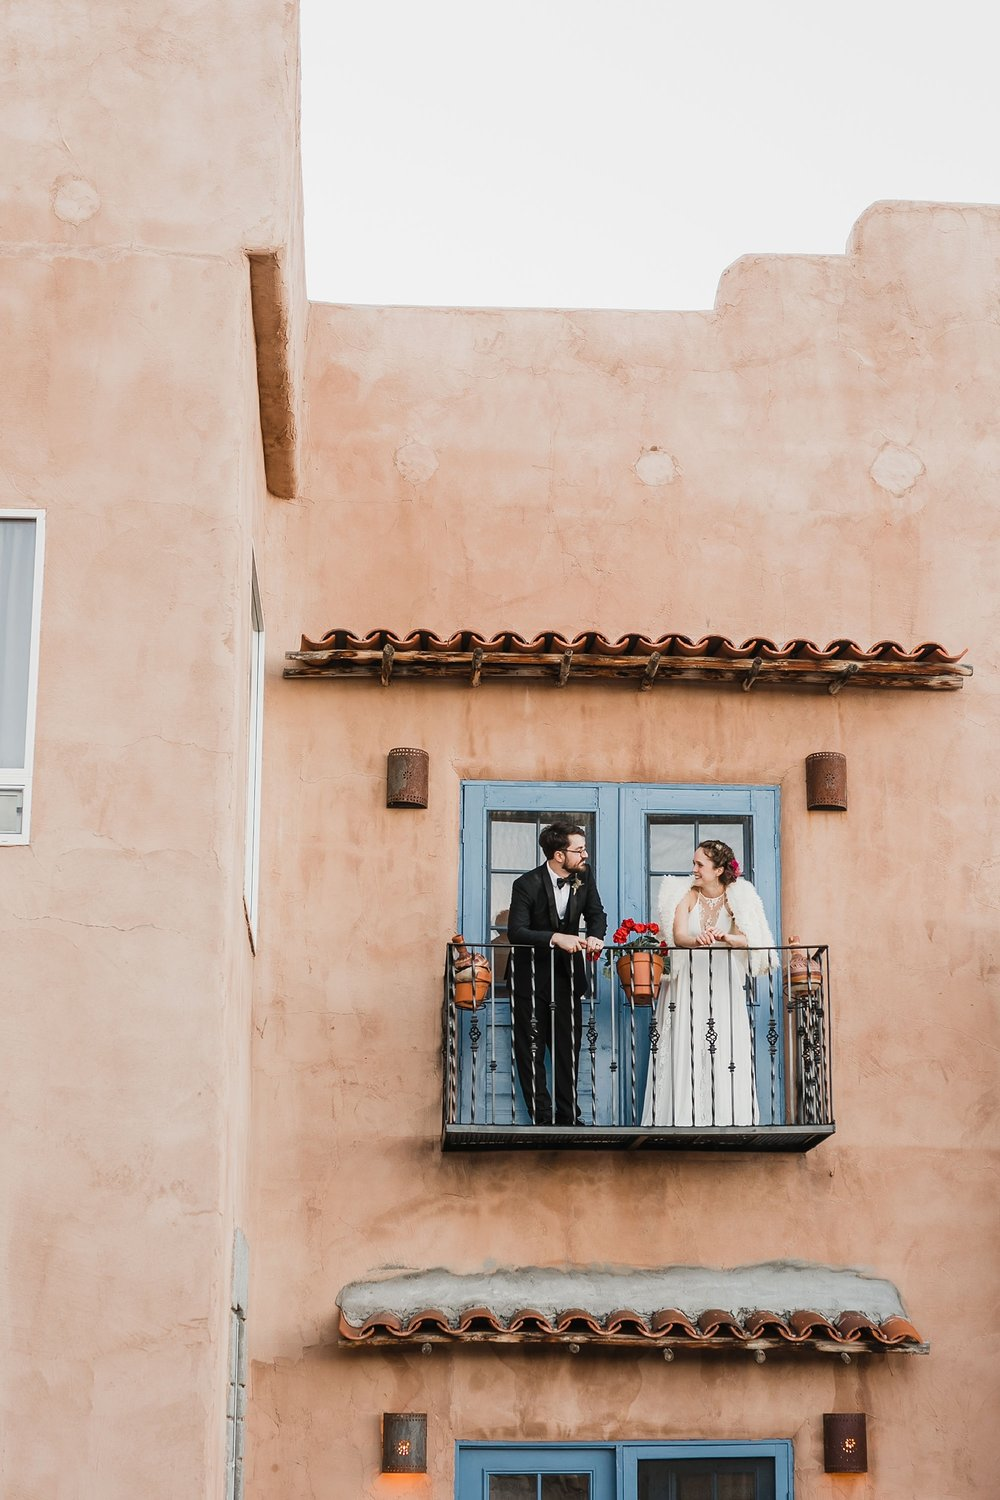 Alicia+lucia+photography+-+albuquerque+wedding+photographer+-+santa+fe+wedding+photography+-+new+mexico+wedding+photographer+-+new+mexico+wedding+-+engagement+-+santa+fe+wedding+-+hacienda+dona+andrea+-+hacienda+dona+andrea+wedding_0087.jpg